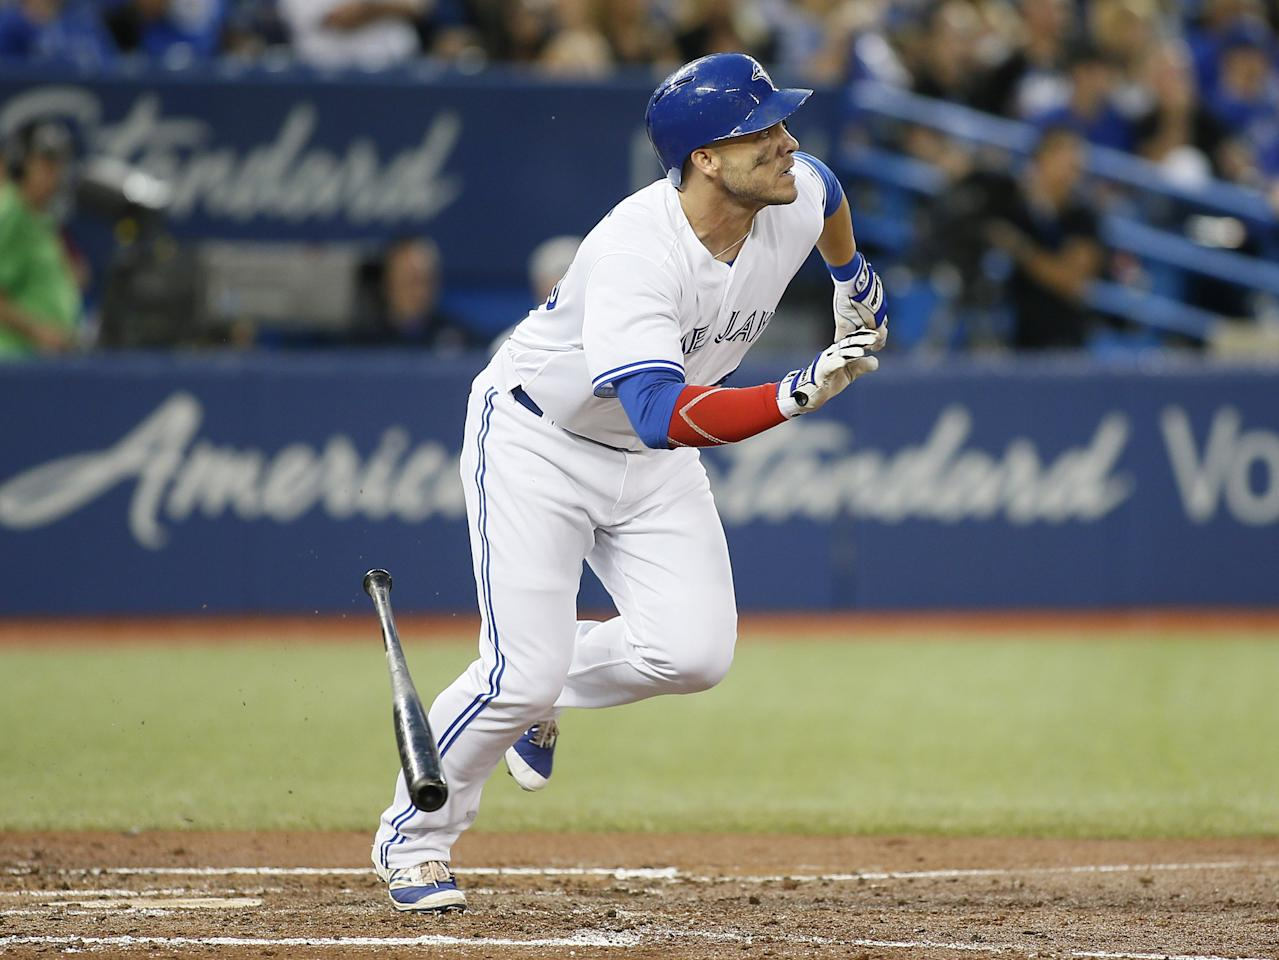 Aug 16, 2017; Toronto, Ontario, CAN; Toronto Blue Jays left fielder Steve Pearce (28) heads to first base on his solo homerun against the Tampa Bay Rays in the fourth inning at Rogers Centre. Mandatory Credit: John E. Sokolowski-USA TODAY Sports     TPX IMAGES OF THE DAY